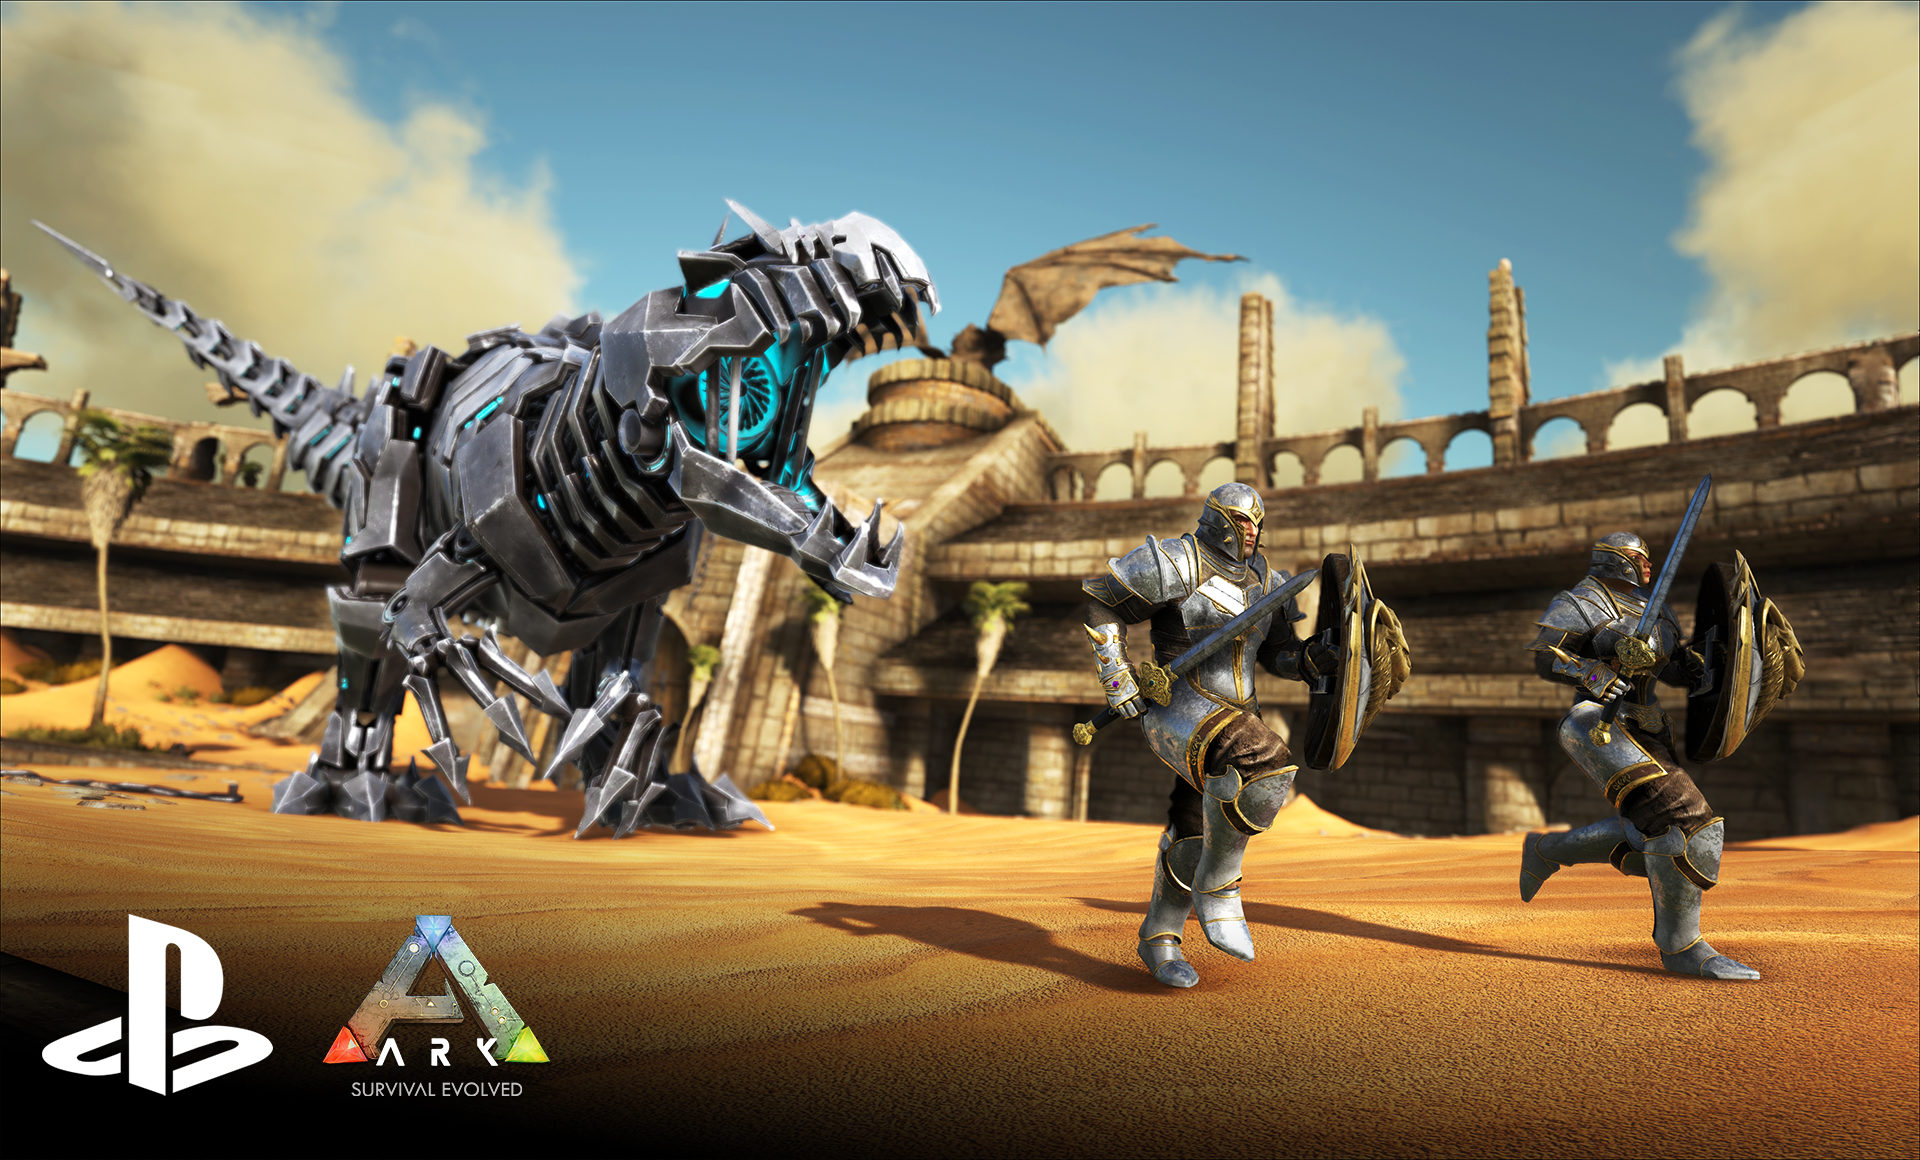 ARK dev: PS4 Pro performance equal to $900 gaming PC